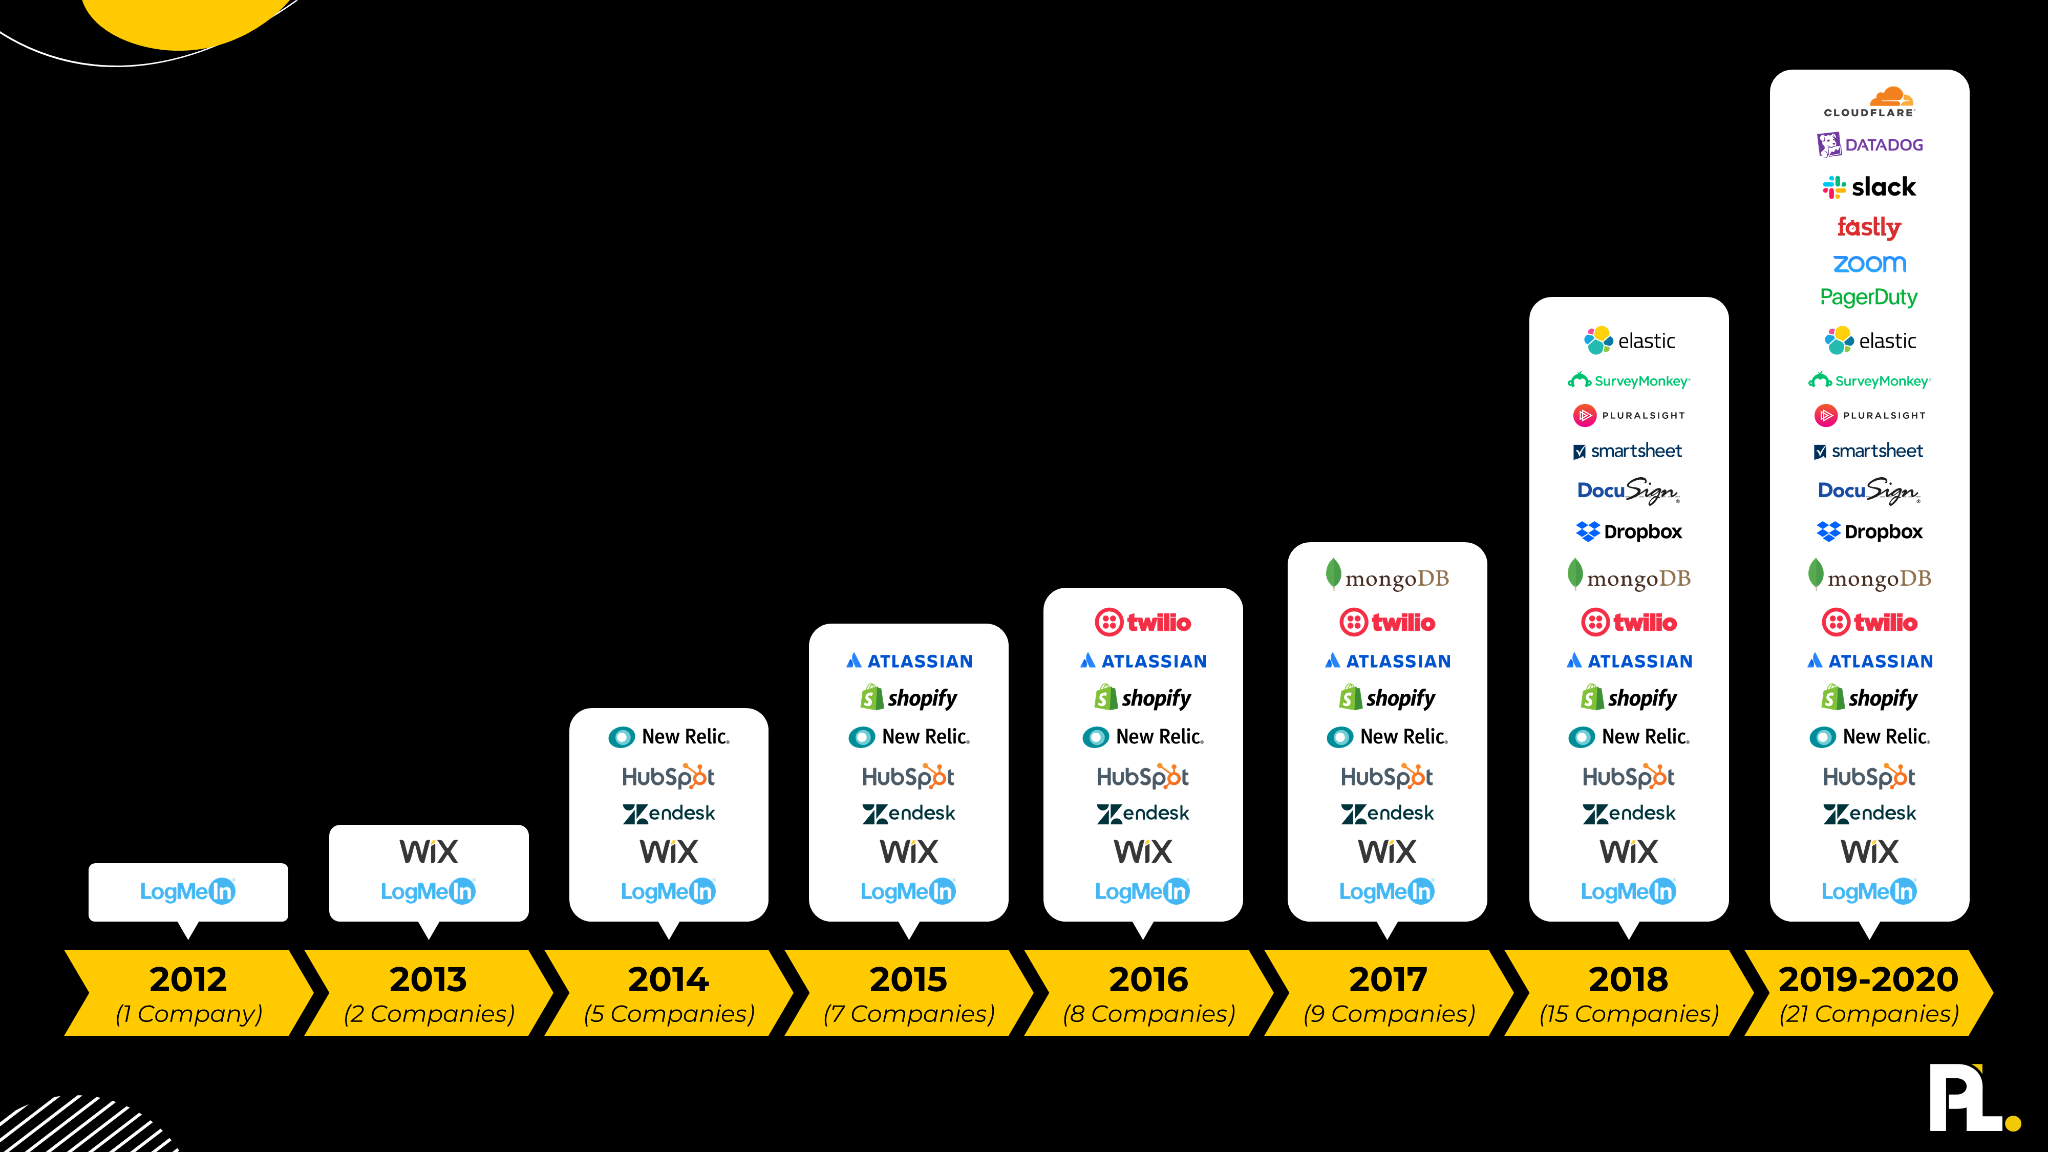 product-led companies from 2012-2020